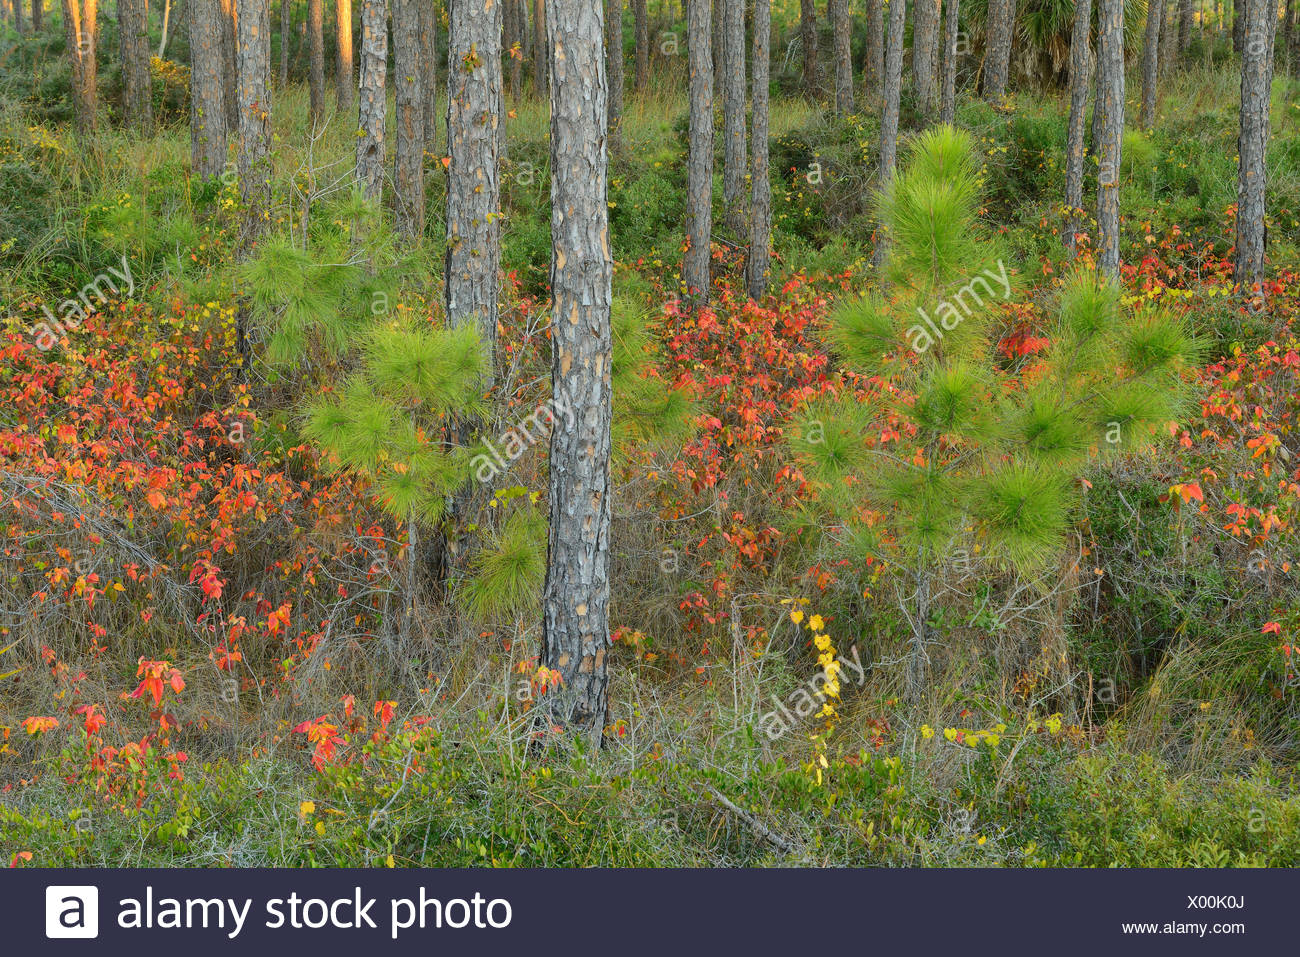 USA, Florida, Franklin County, Gulf of Mexico, Apalachicola, St. George Island, State Park, coastal pine forest in autumn, Stock Photo